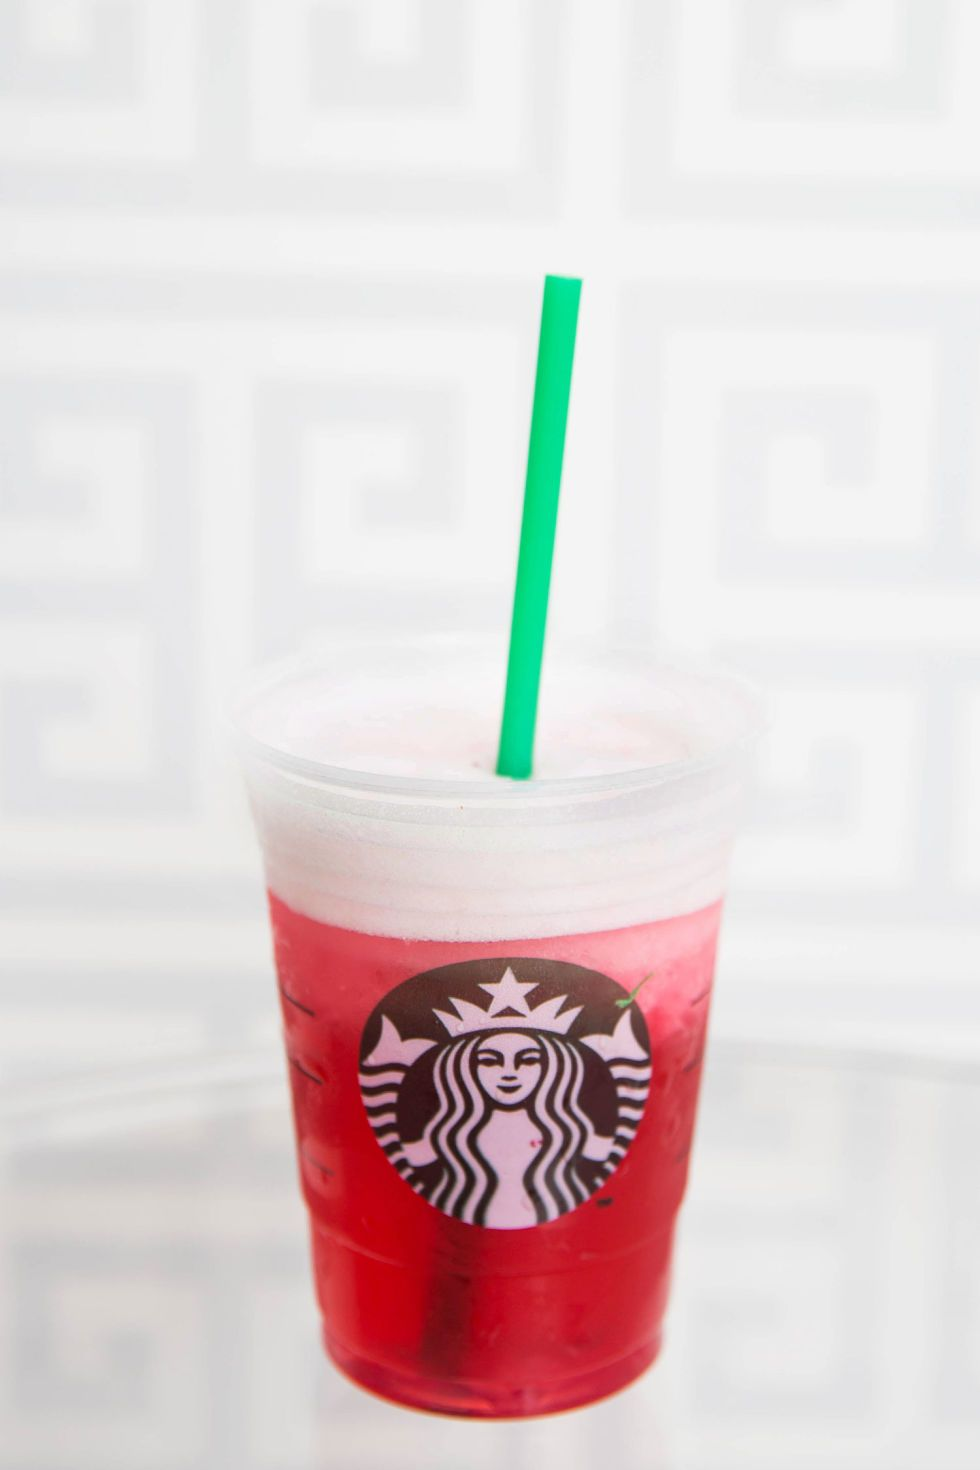 Slushy Passion Teavana - Shaken Iced Passion Tango Tea Lemonade blended with a cream base.